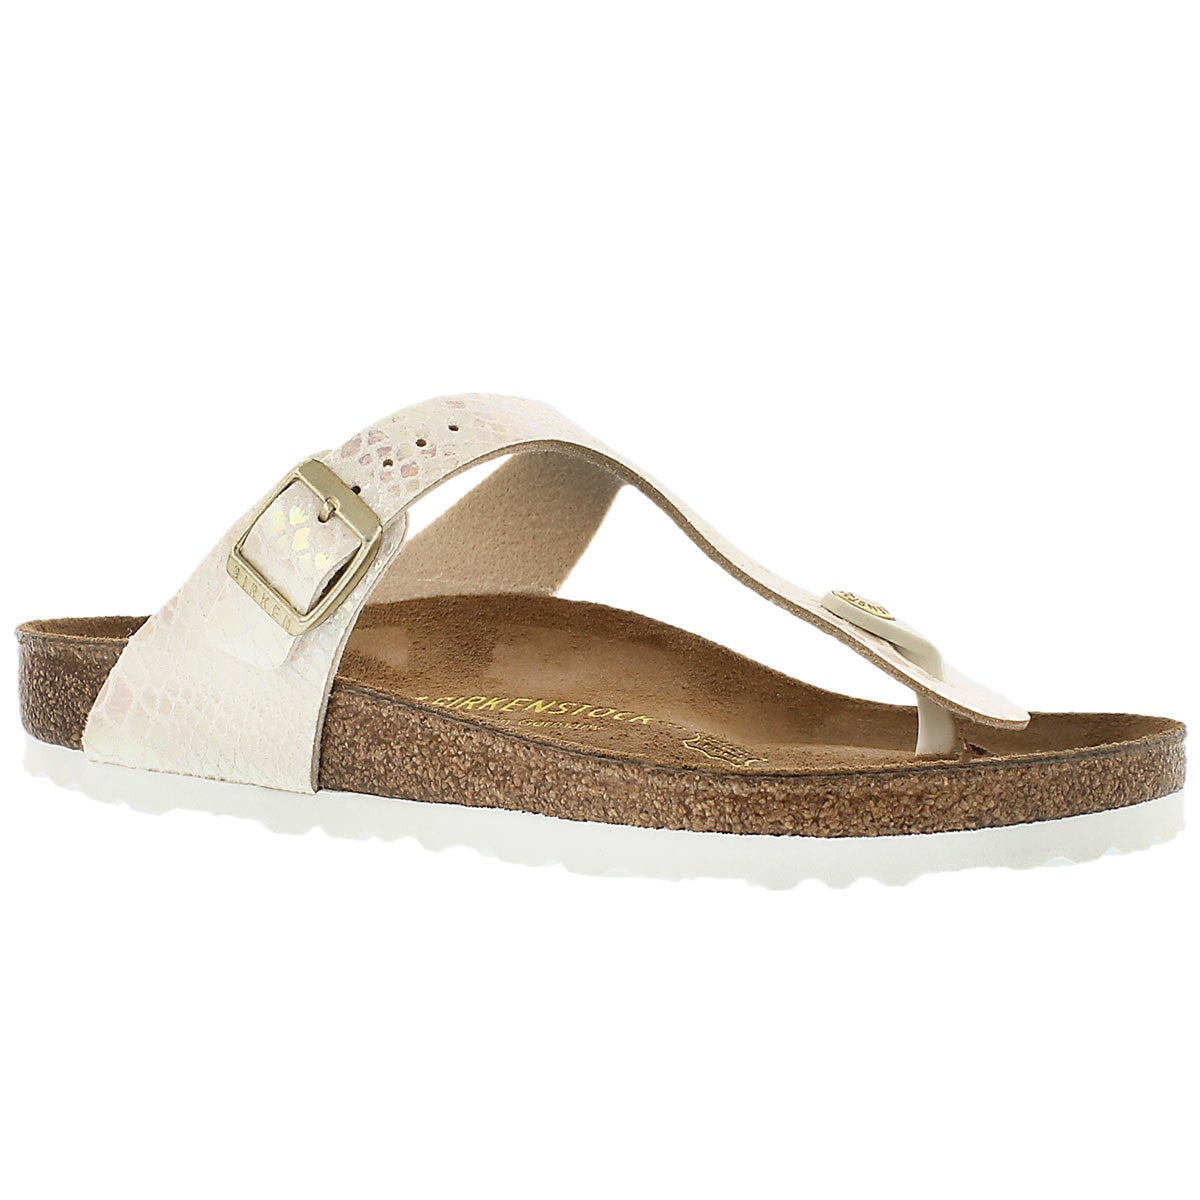 Women's GIZEH shiny snake cream thong sandals